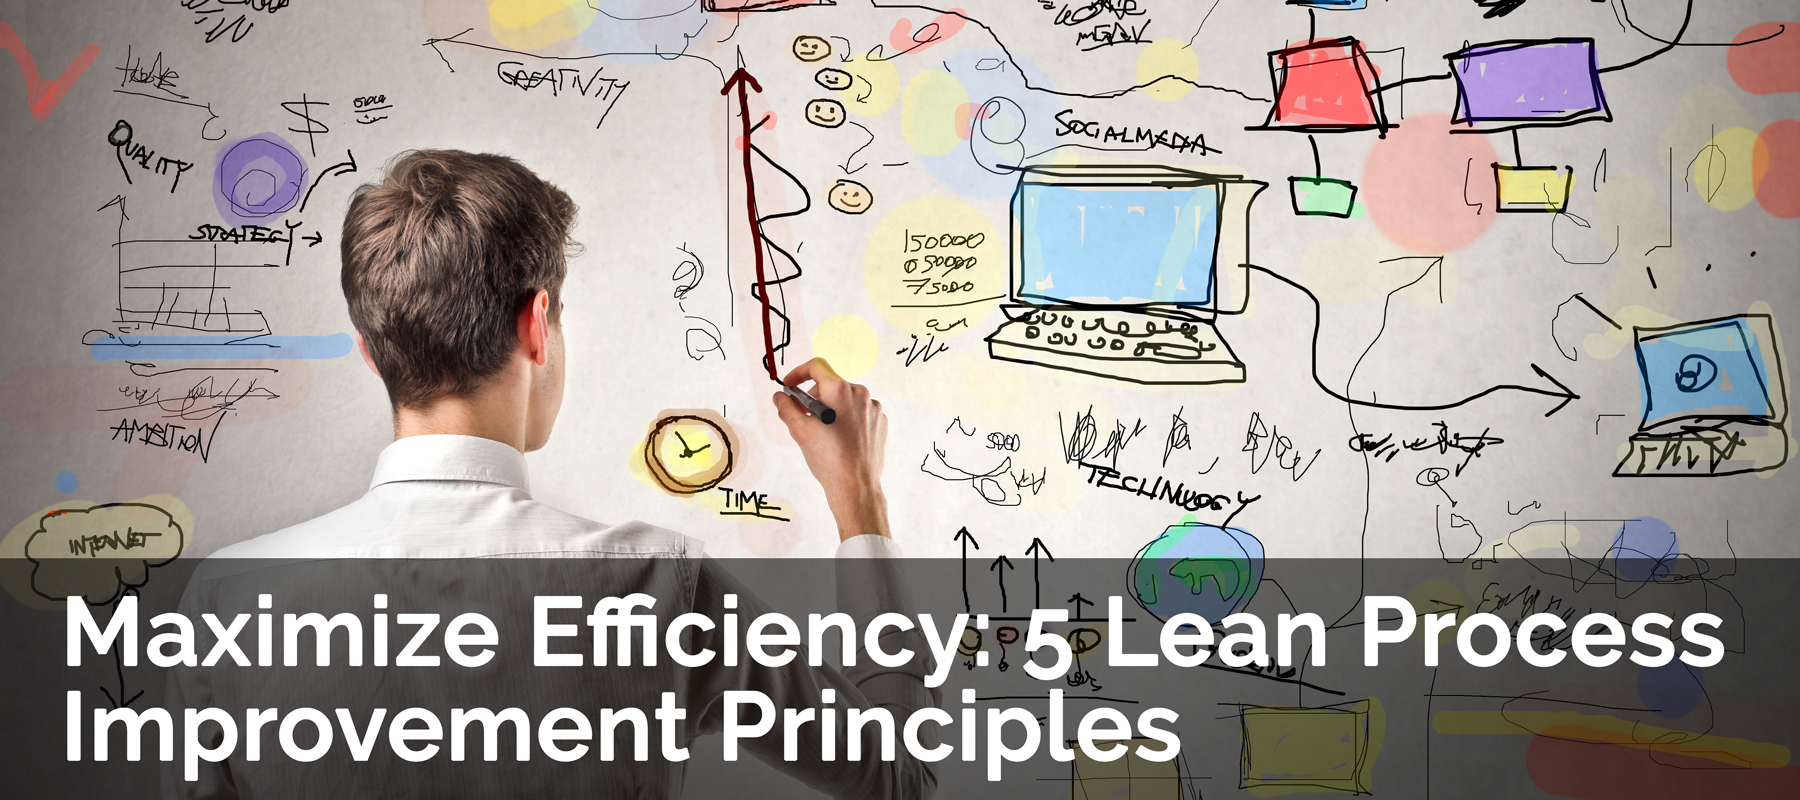 Maximize Efficiency: 5 Lean Process Improvement Principles